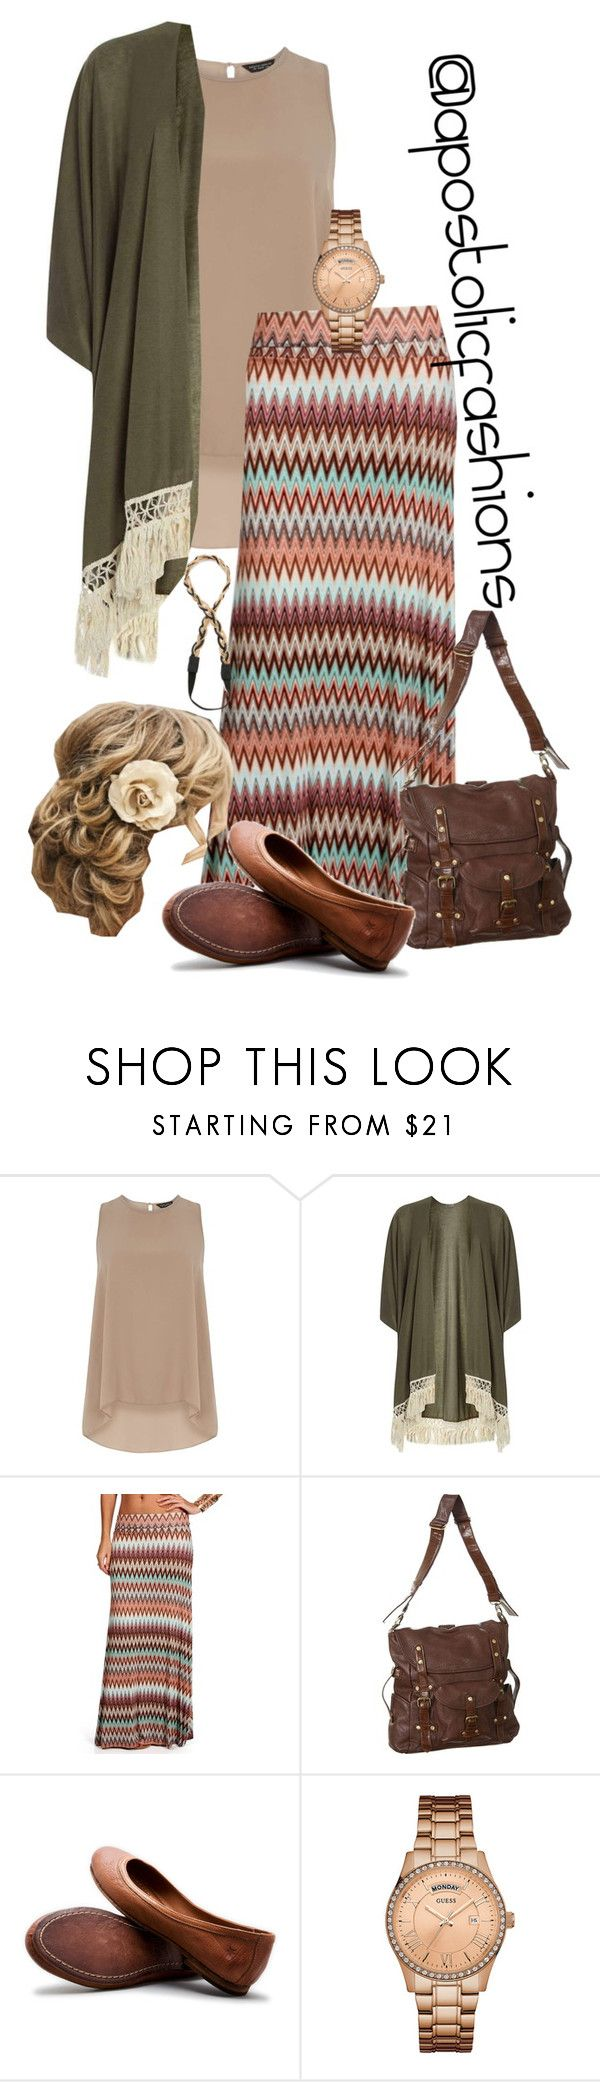 """Apostolic Fashions #1602"" by apostolicfashions ❤ liked on Polyvore featuring Dorothy Perkins, Frye, GUESS, Jules Smith, modestlykay and modestlywhit"